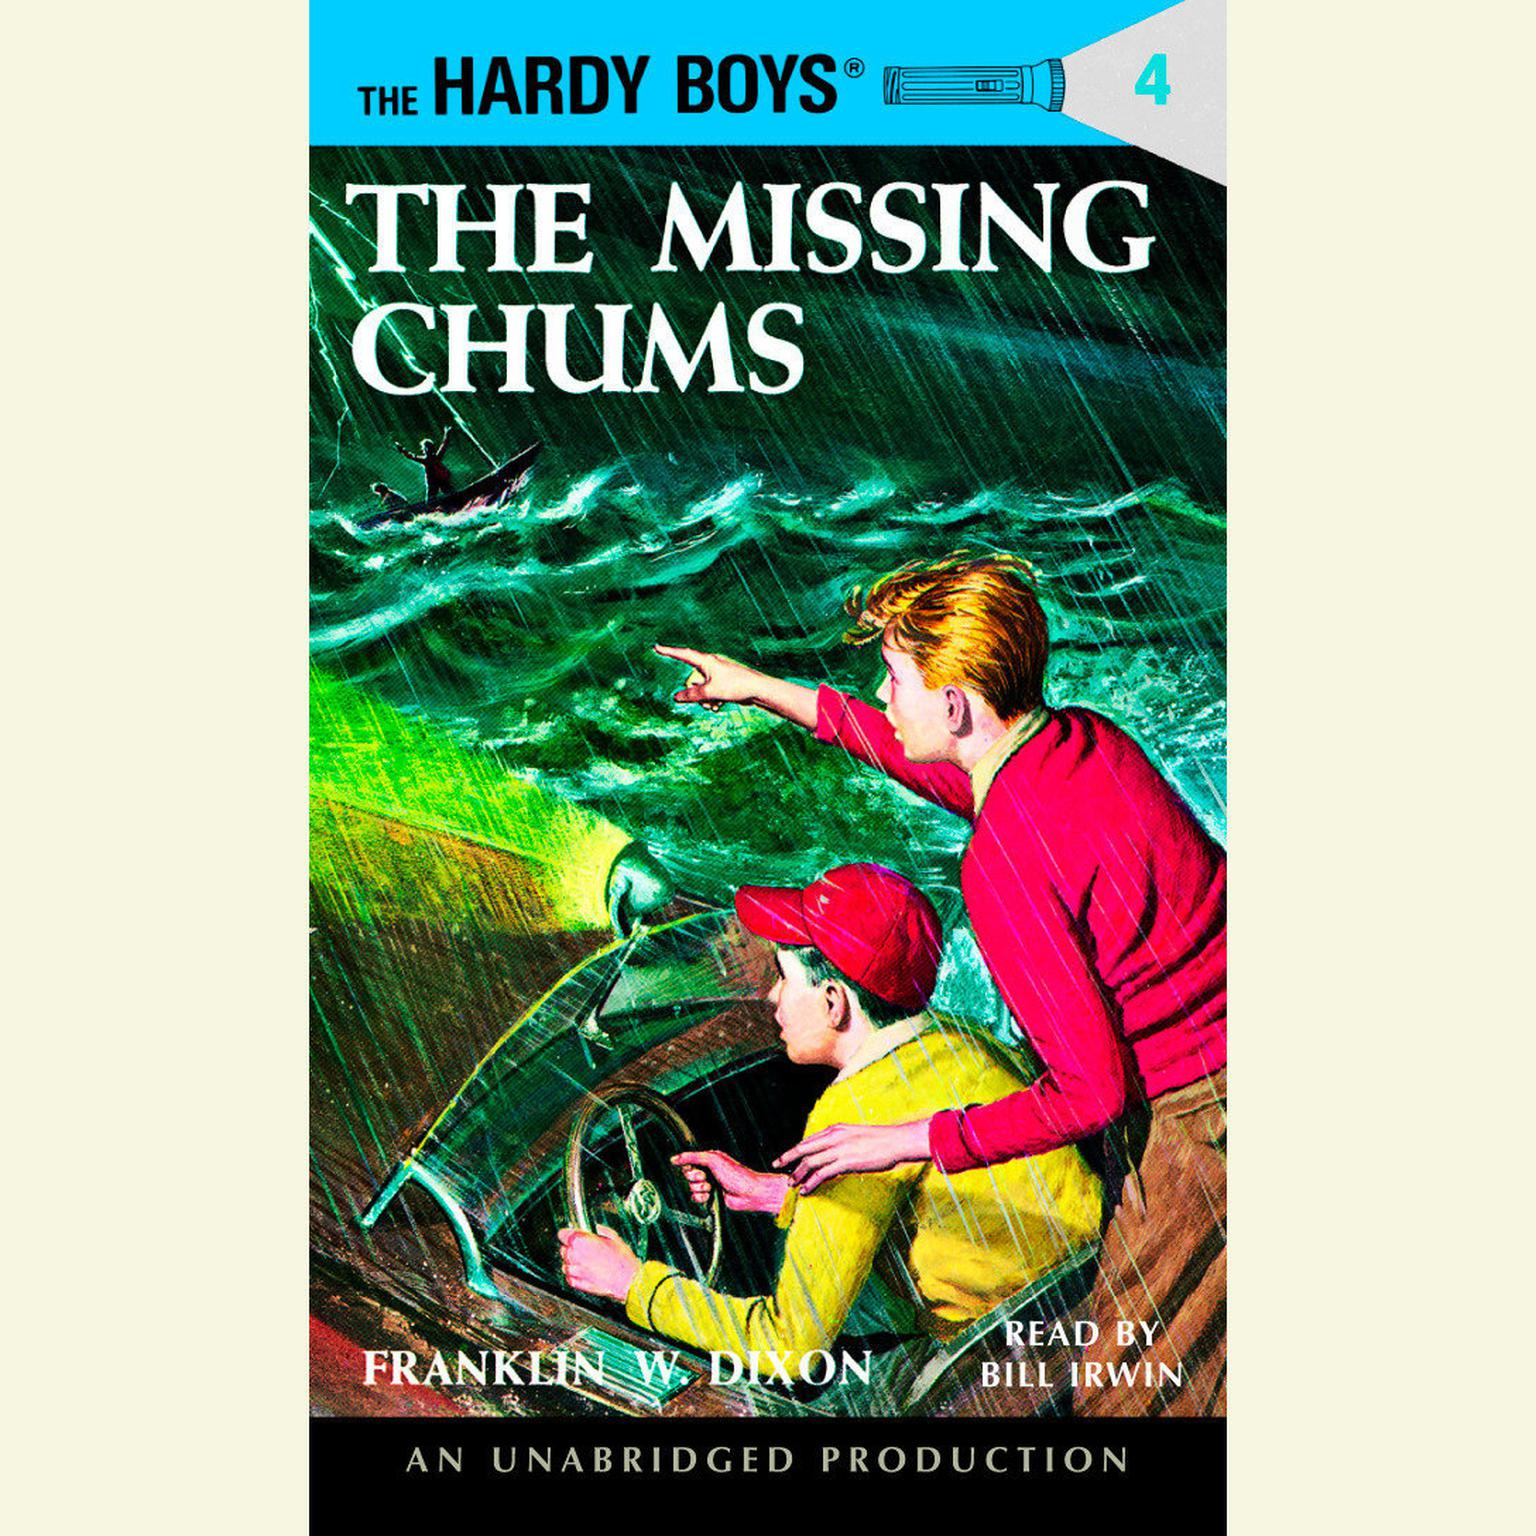 The Hardy Boys #4: The Missing Chums Audiobook, by Franklin W. Dixon